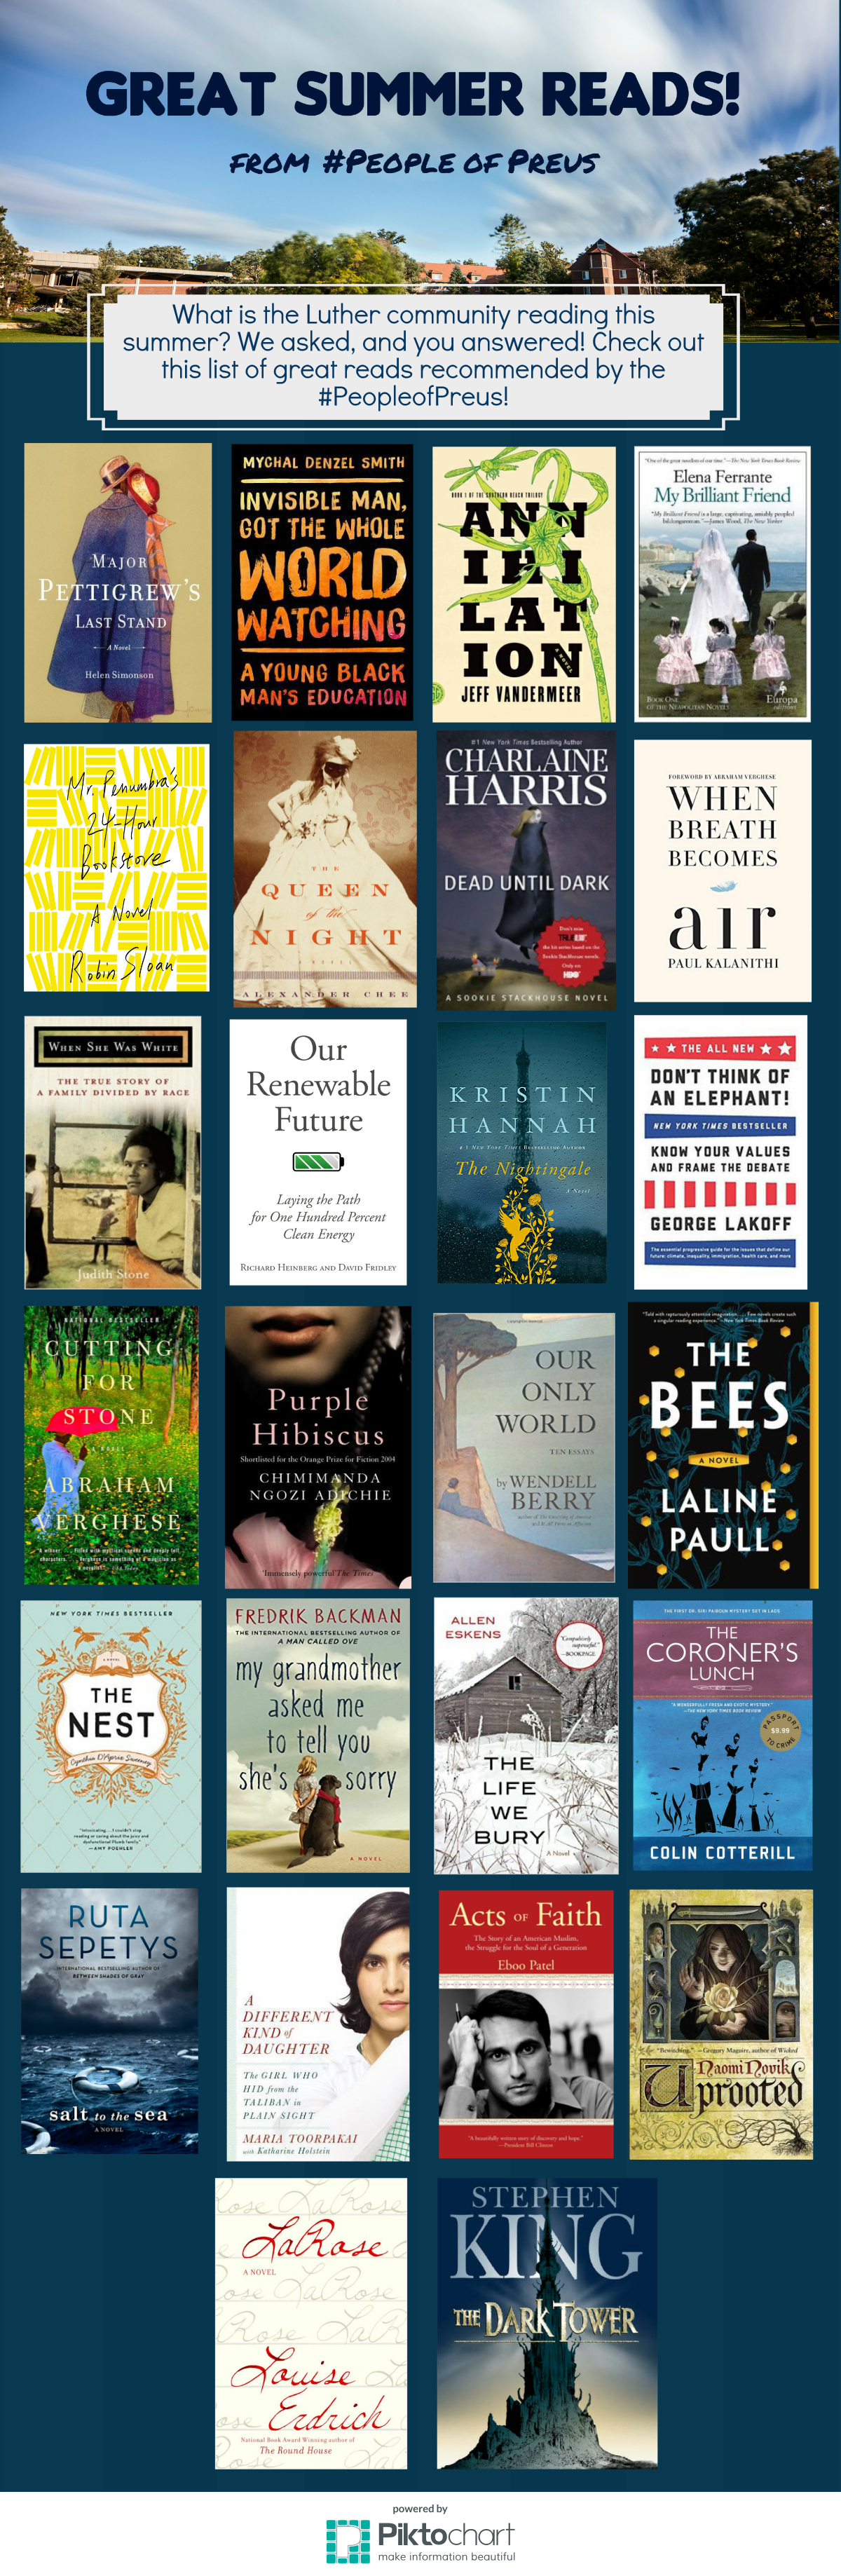 Great Summer Reads 2016